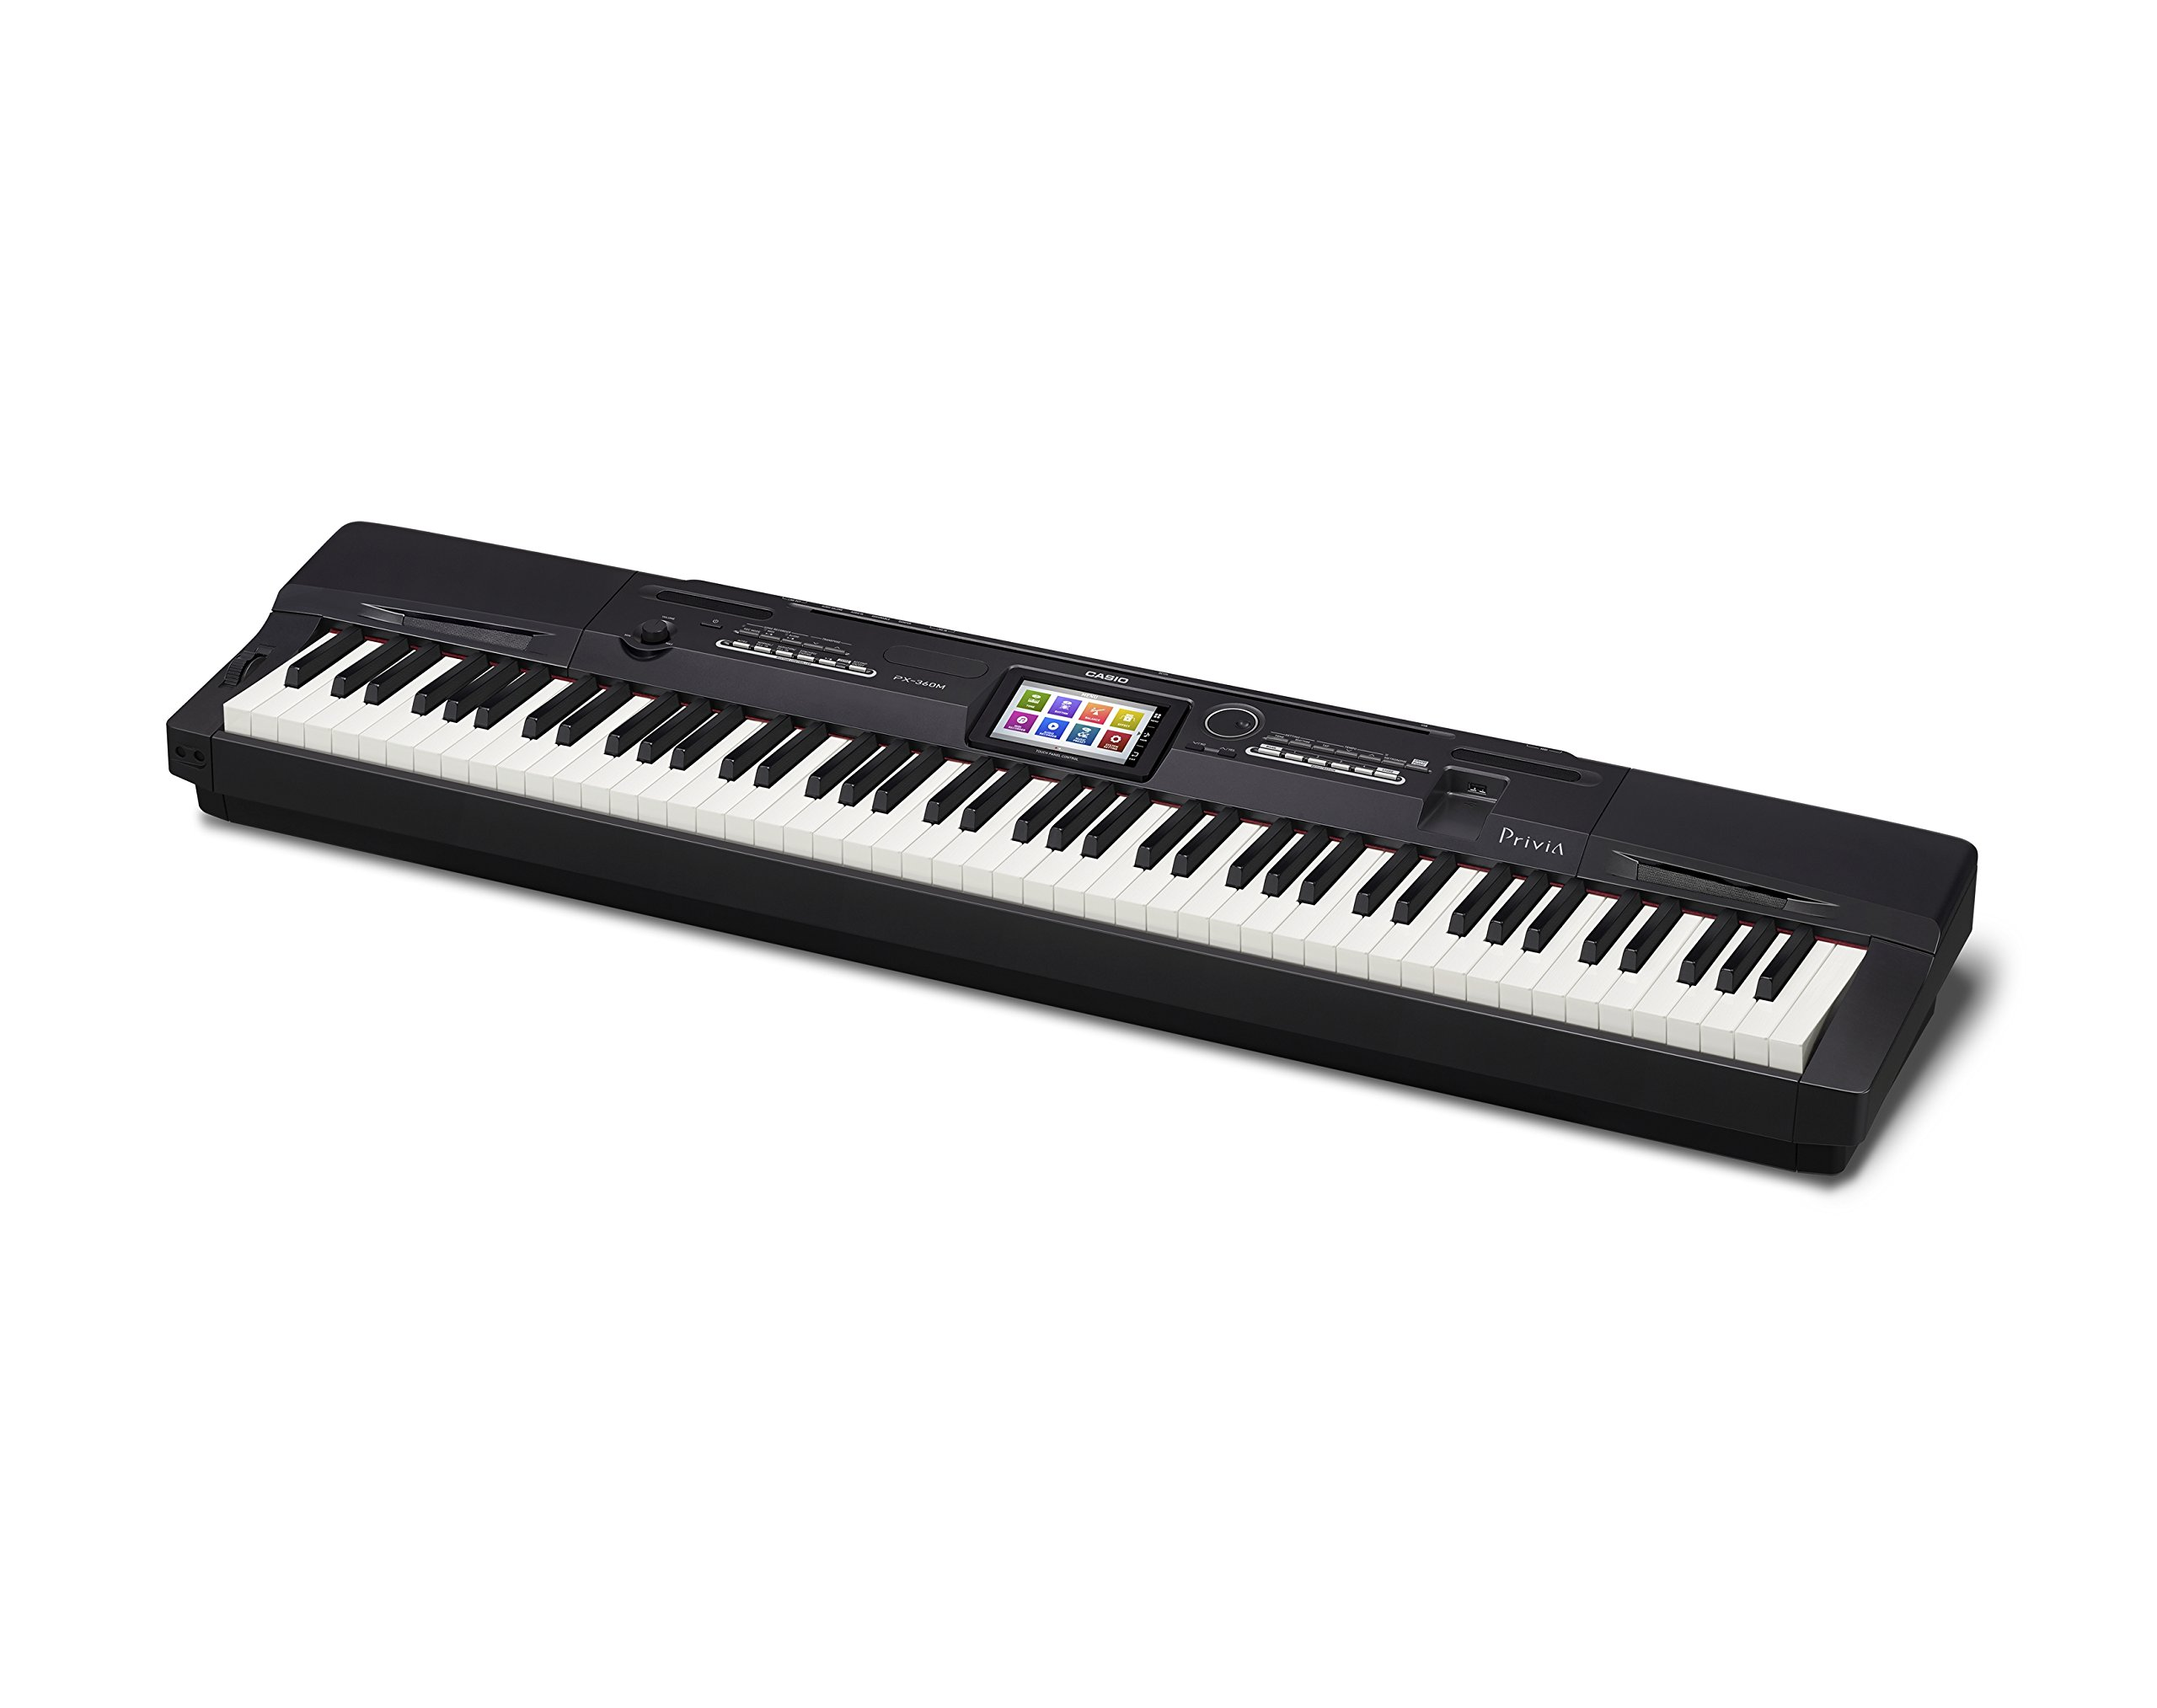 Casio Privia PX-360 Digital Piano - Black Bundle with CS-67 Stand, SP-33 Pedal, Furniture Bench, Instructional Book, Austin Bazaar Instructional DVD, and Polishing Cloth by Casio (Image #4)